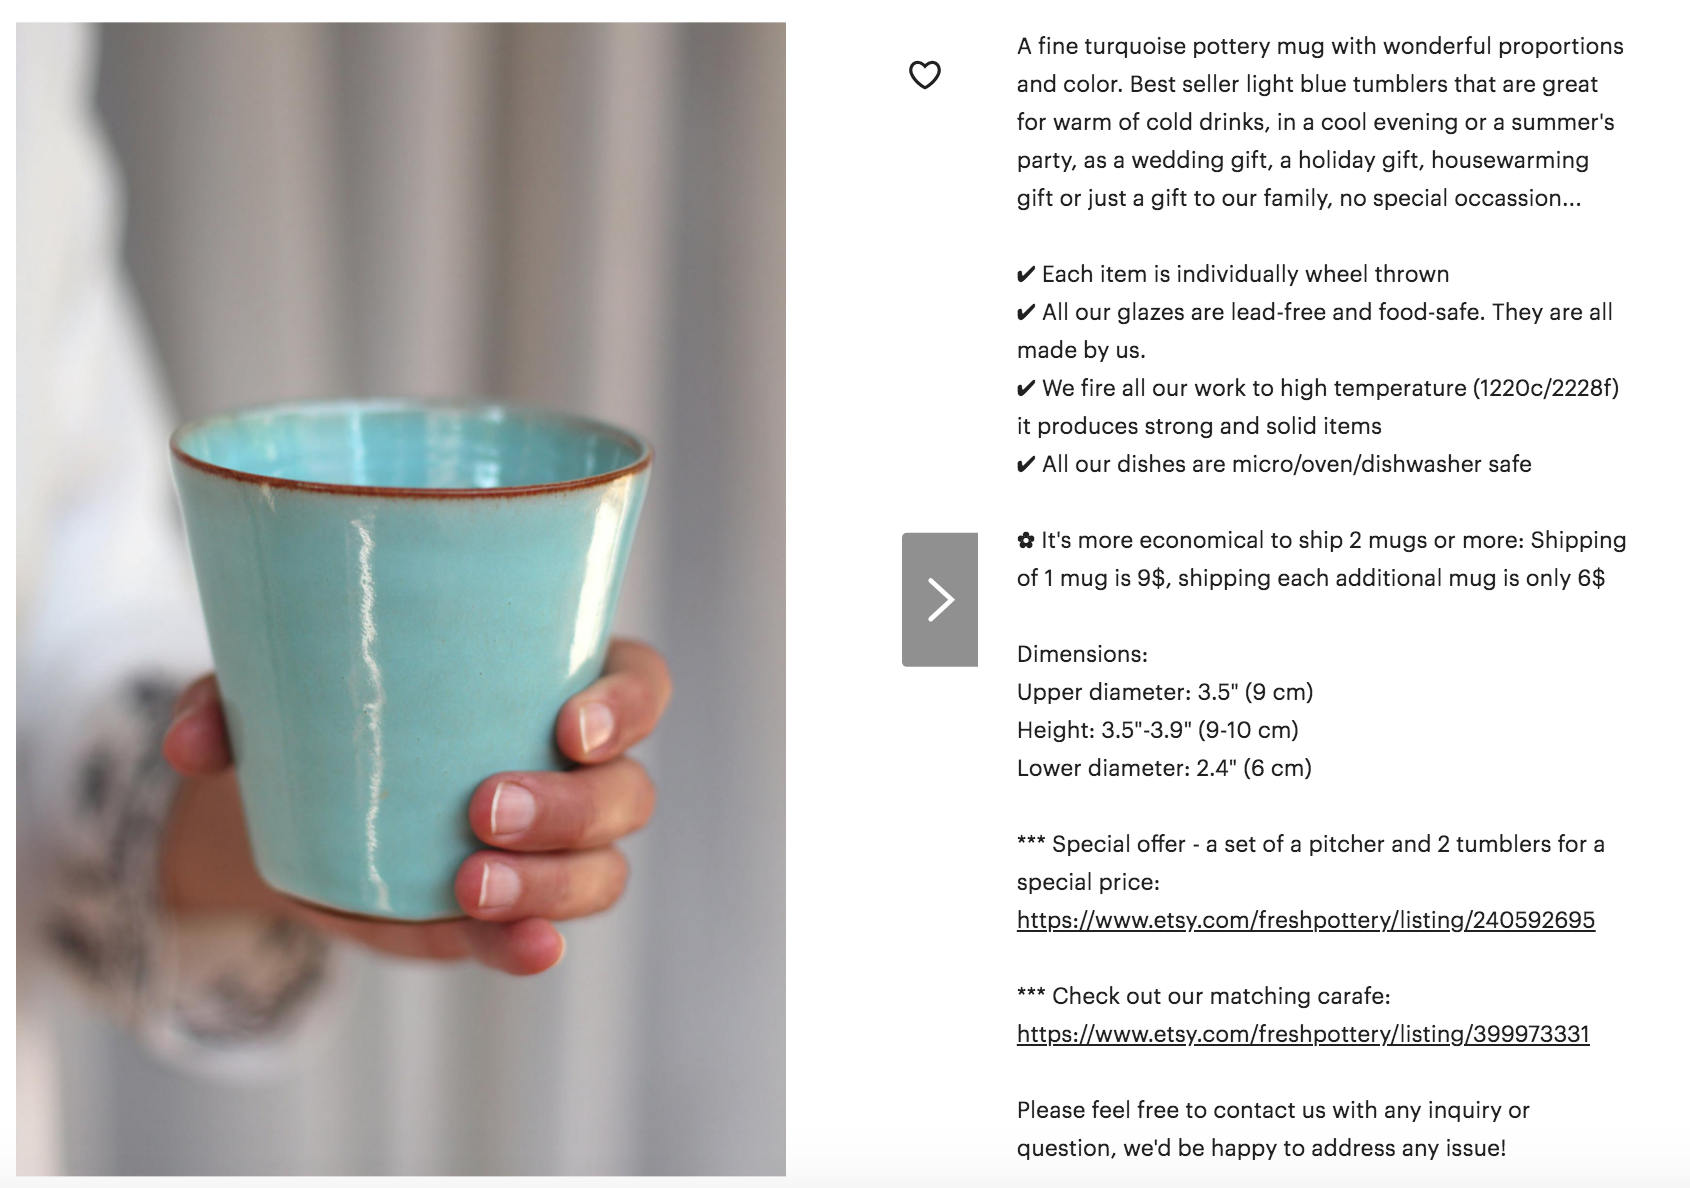 10 Etsy Tips for Differentiating from Similar Sellers and Products